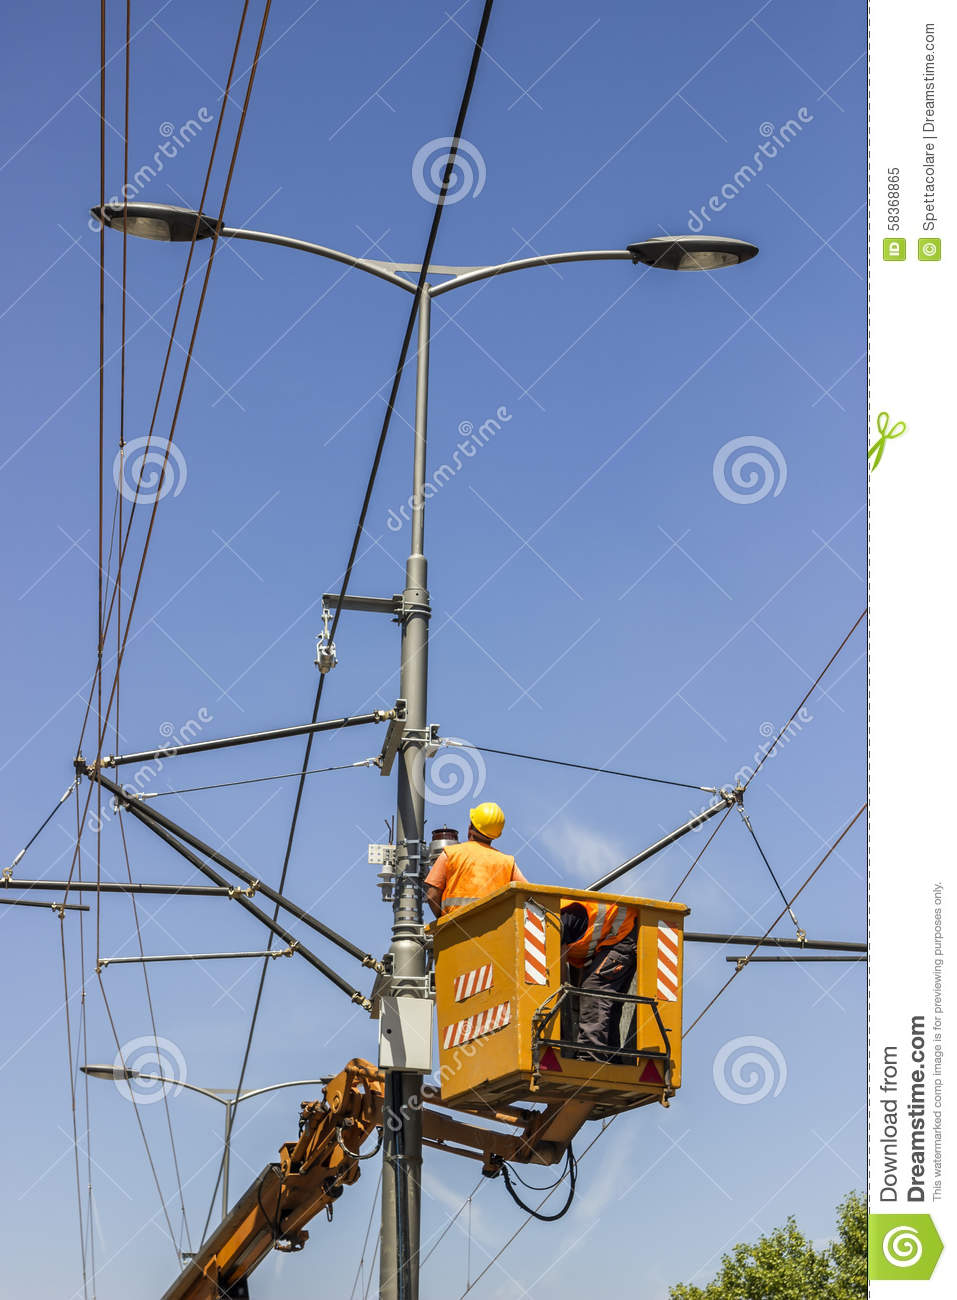 Lineworkers Work On Overhead Power Line Stock Photo Image 58368865